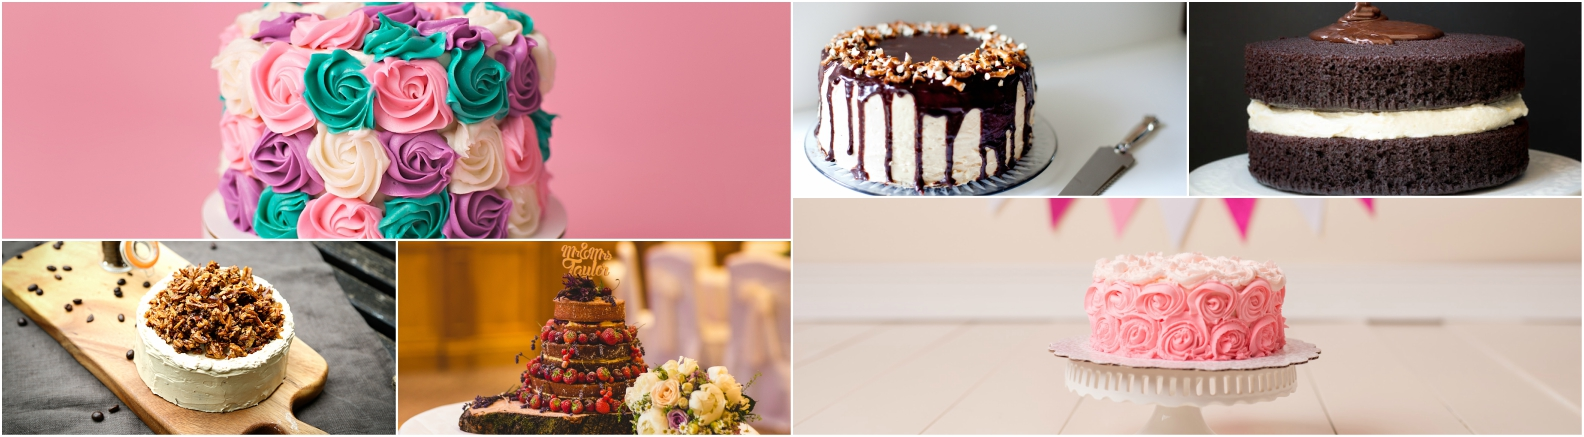 selecting the right cake